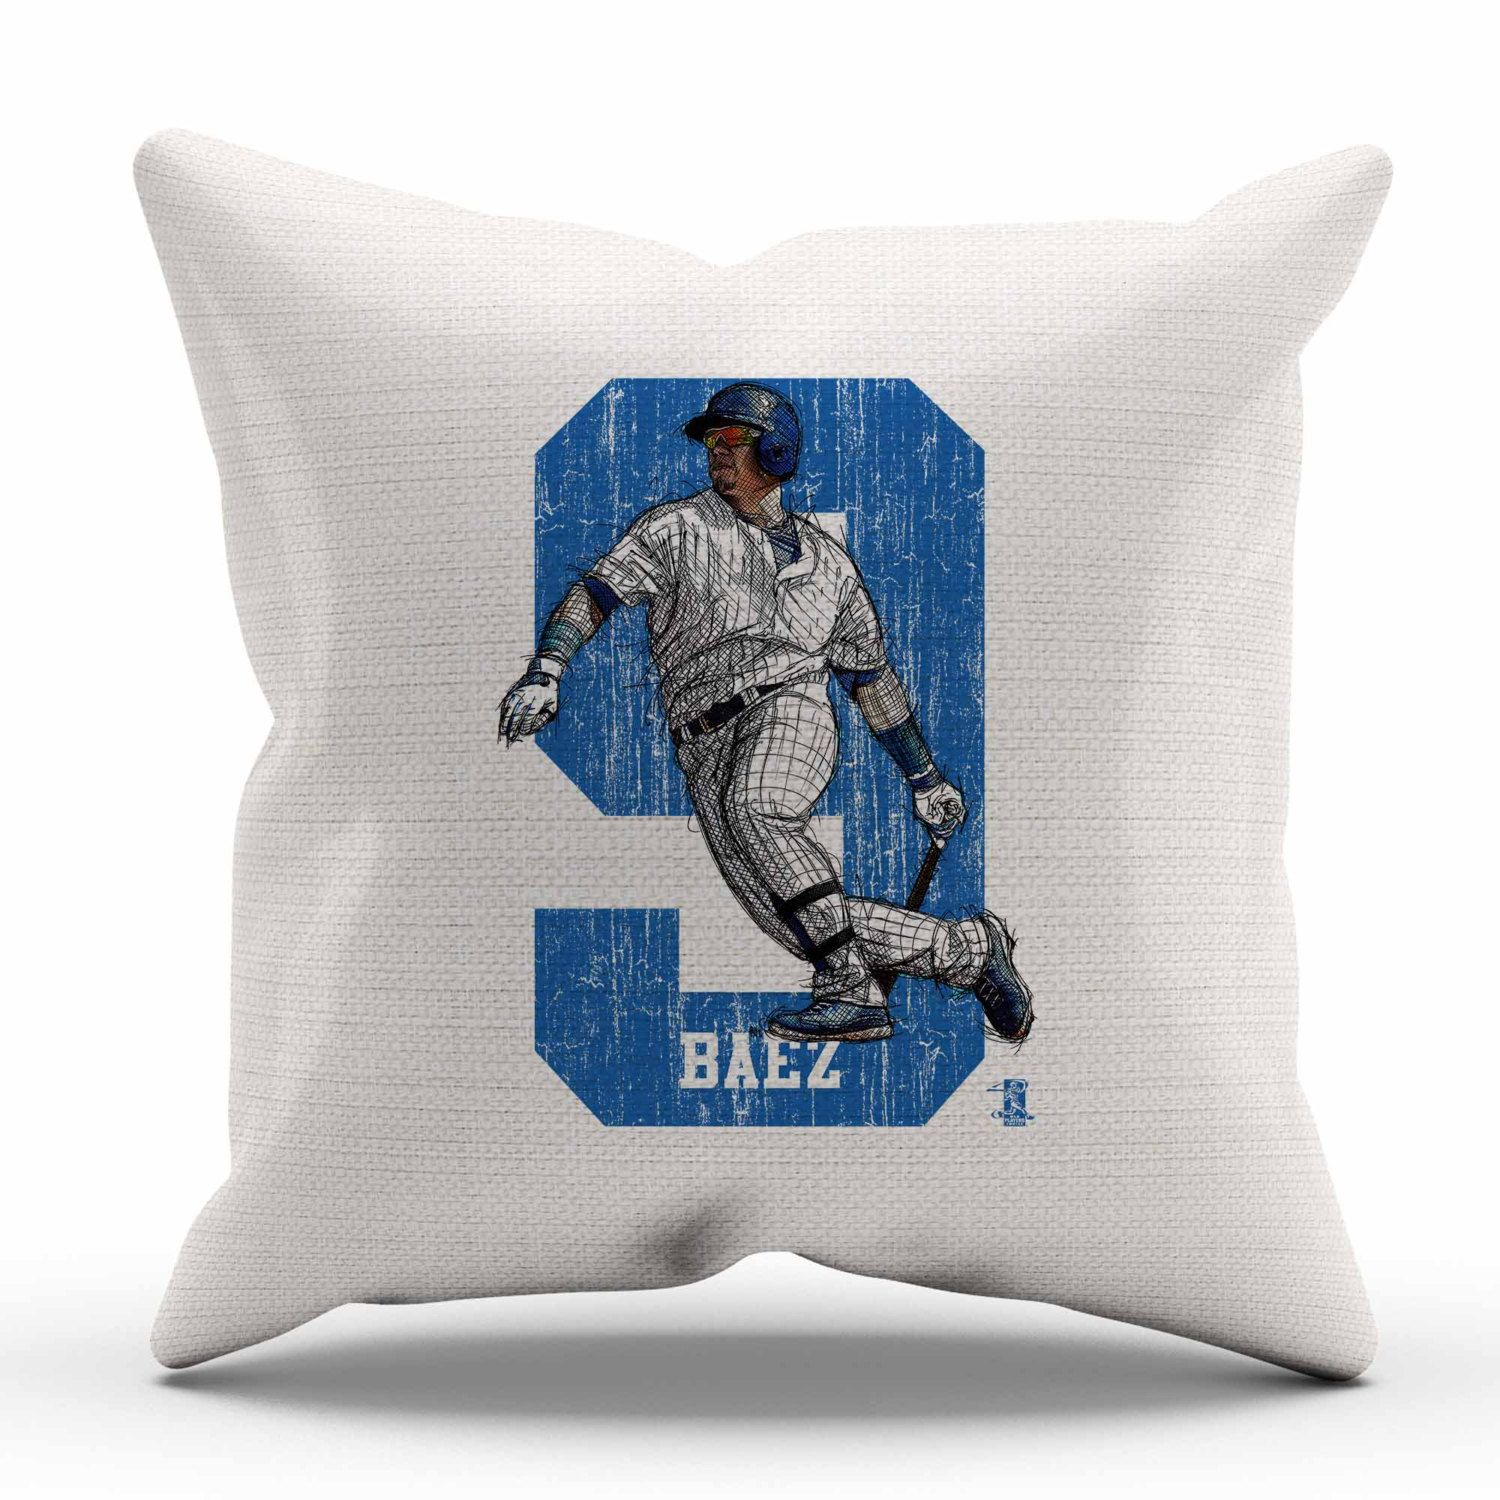 javier baez sketch 9 chicago c decorative pillow officially licensed